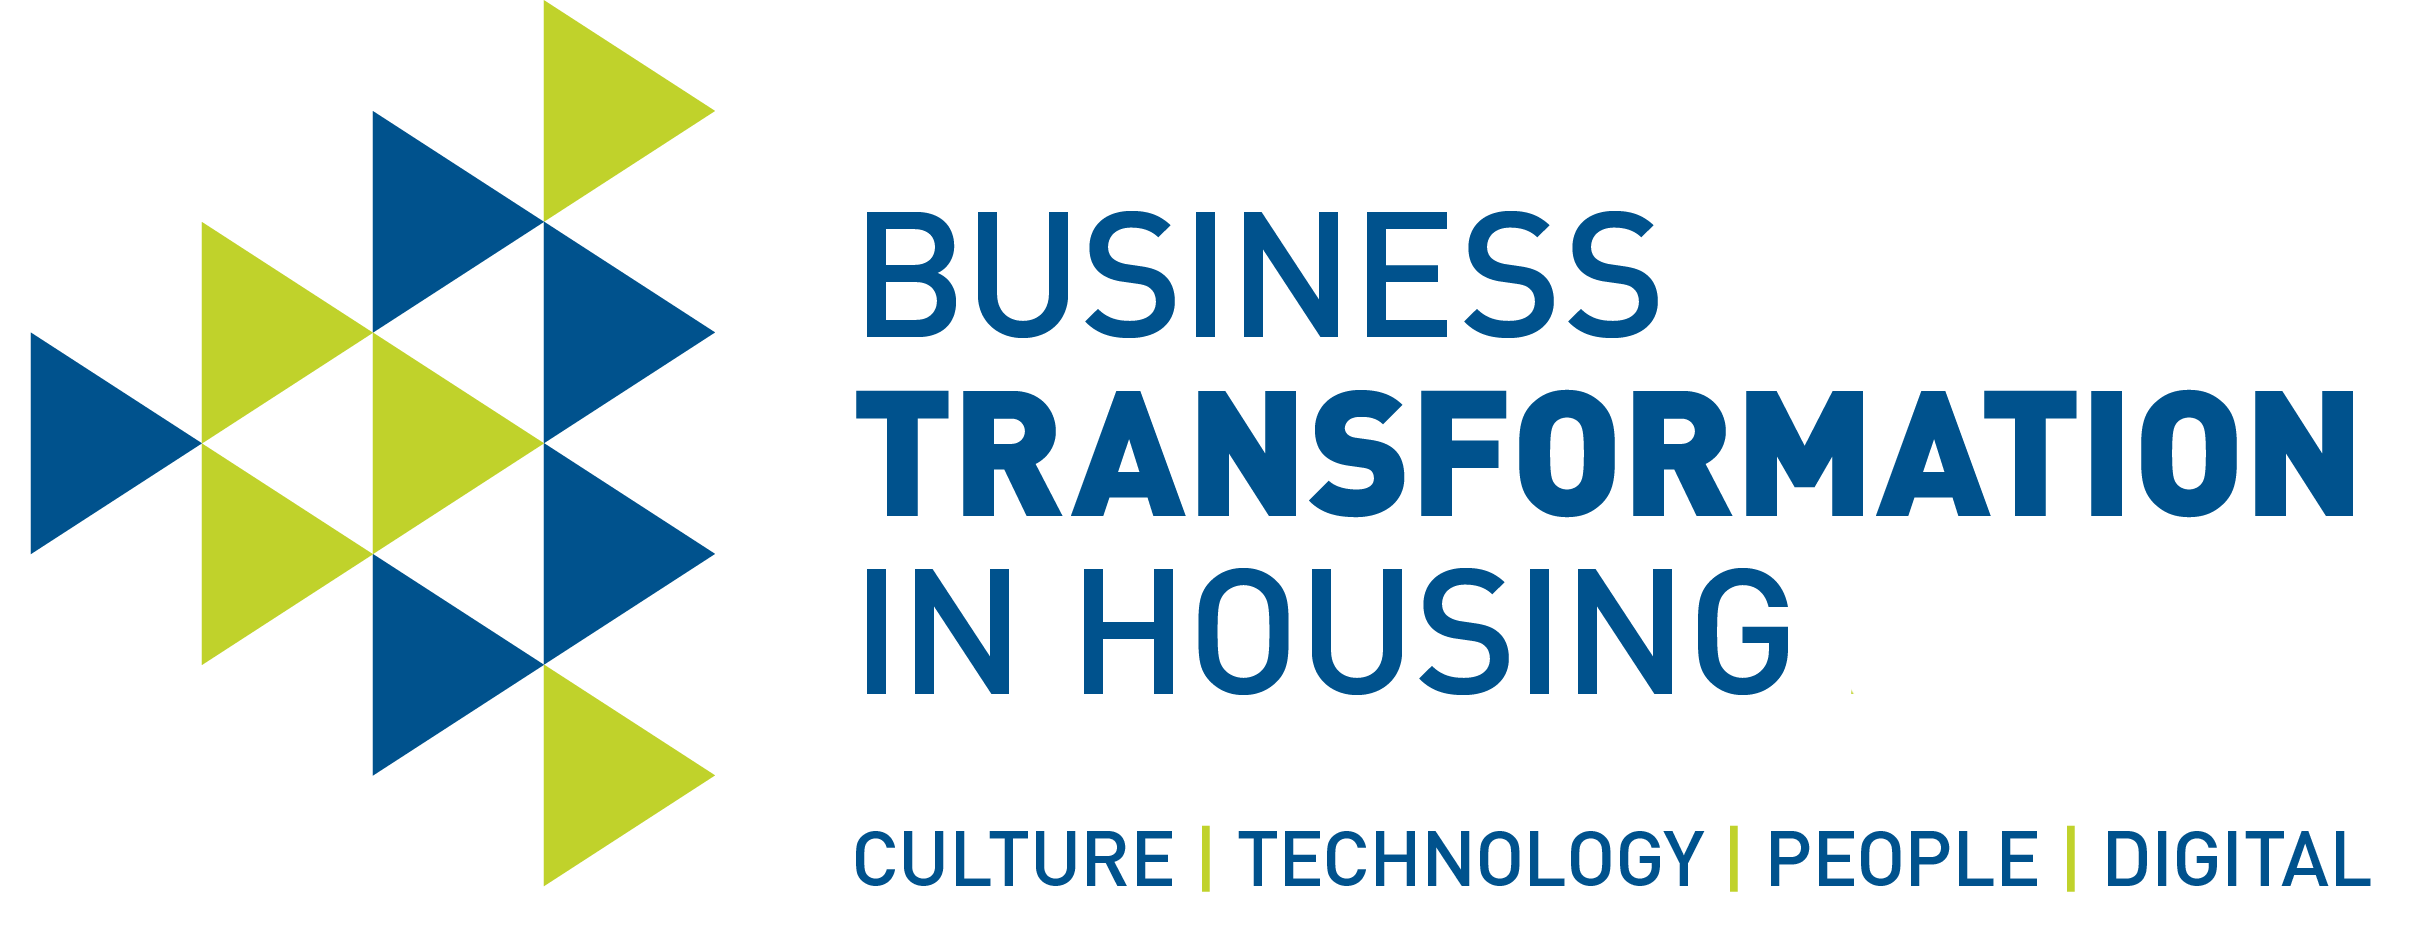 Business Transformation in Housing